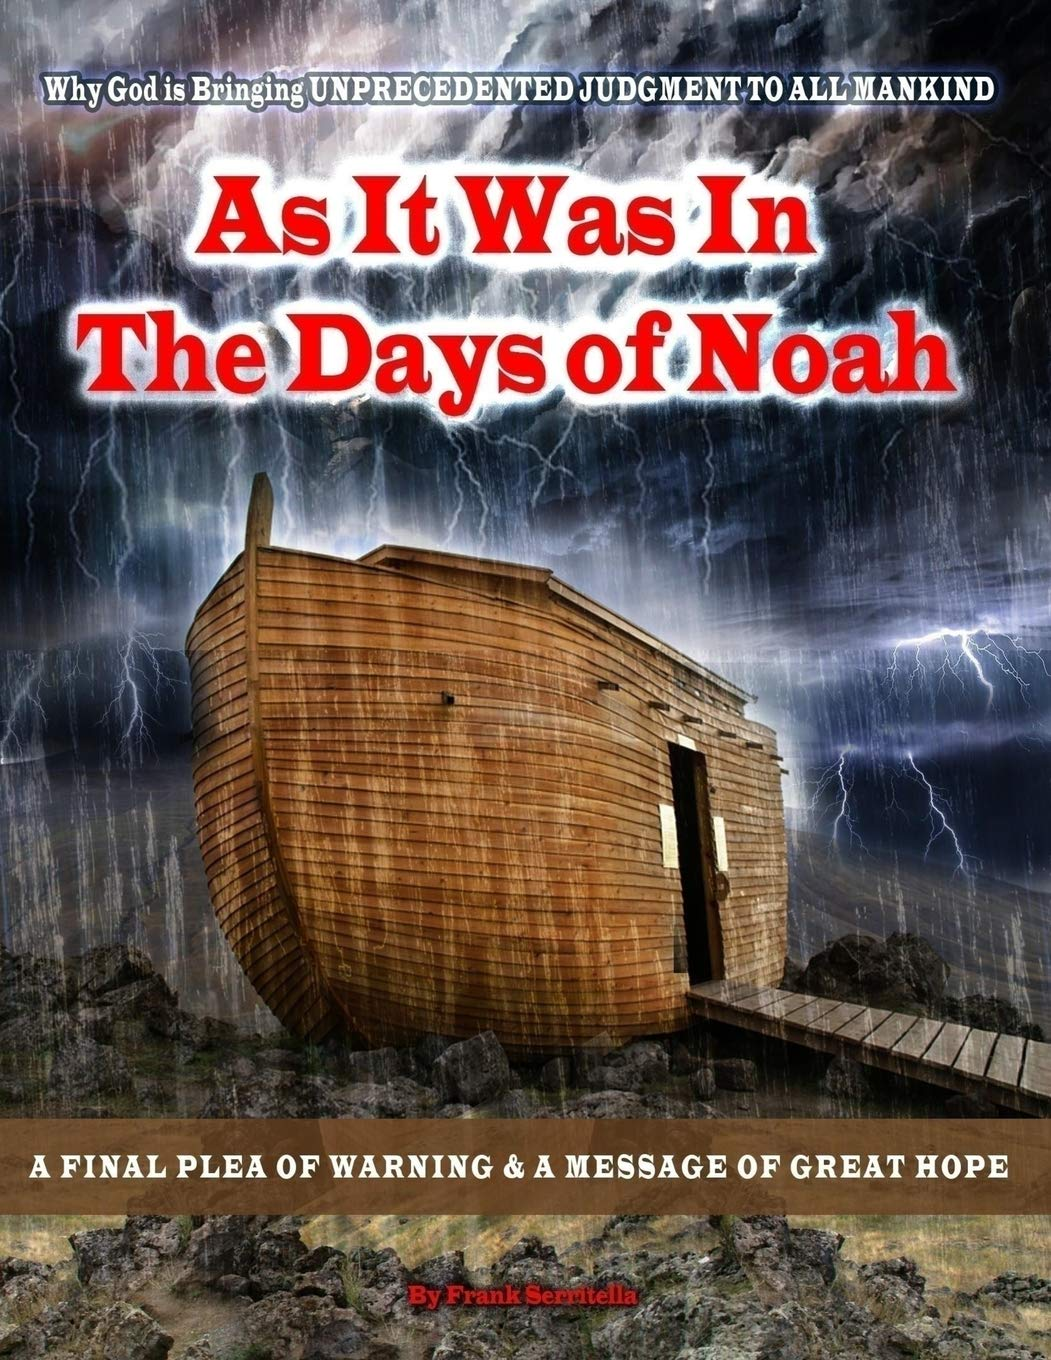 Download As it was in the days of Noah: A Prophetic Warning of the Looming UNPRECEDENTED Judgement of God on America and The World. A Plea of Repentance and a Message of Great Hope. PDF